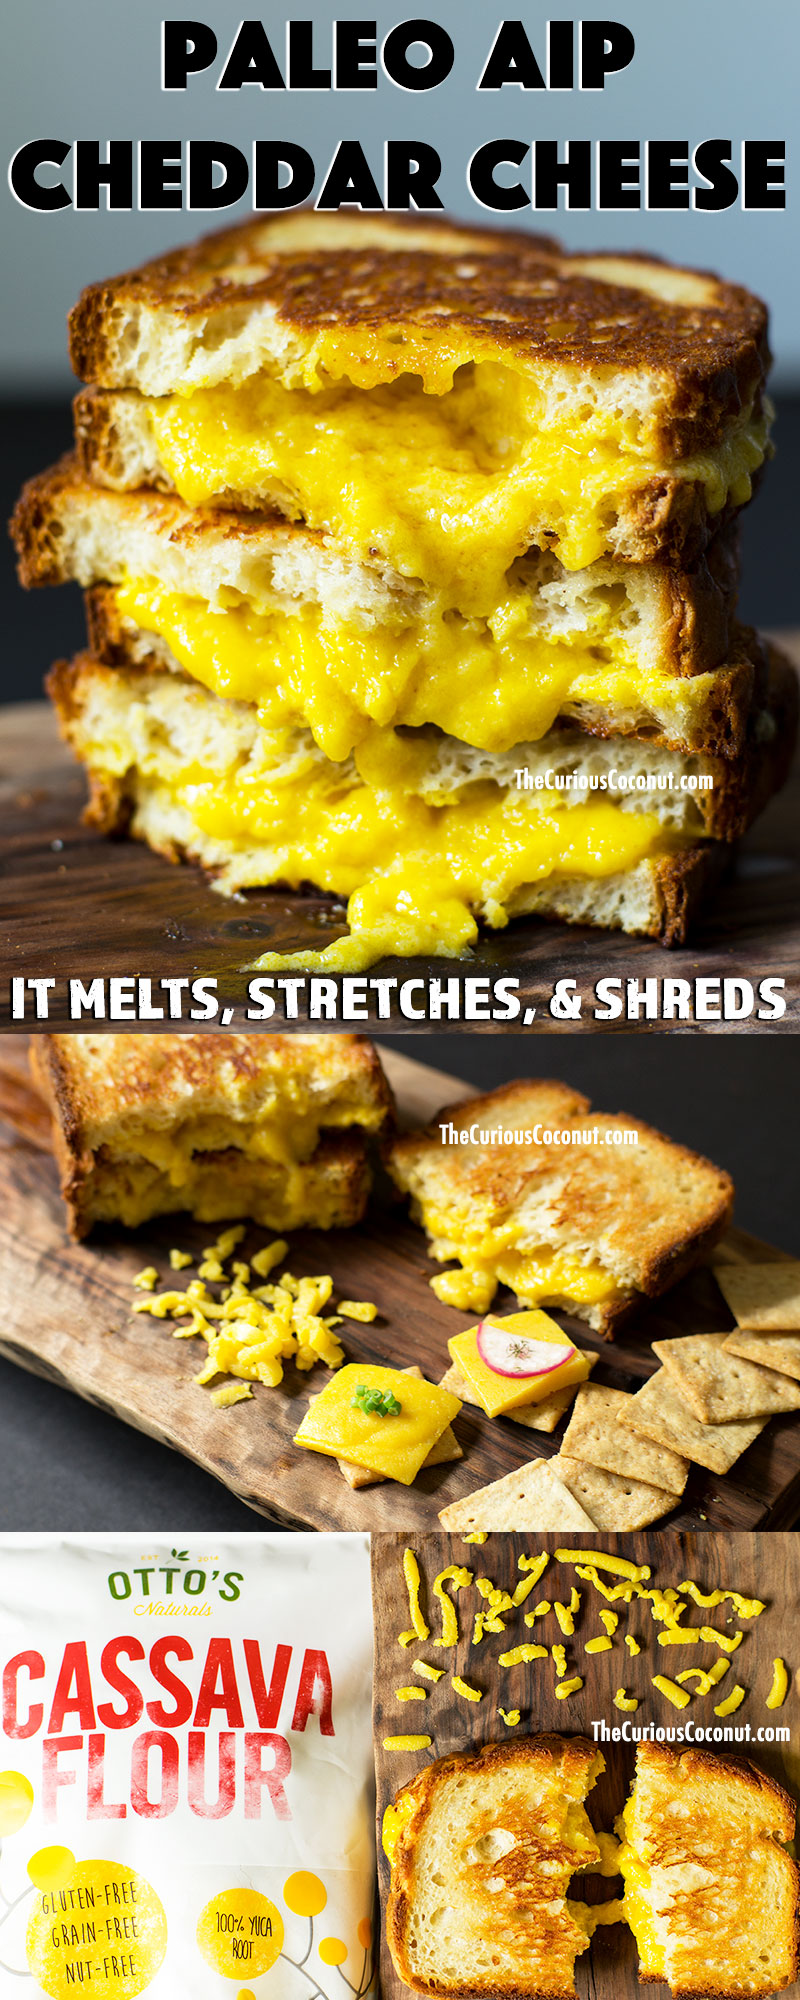 #Paleo #AIP and #vegan cheddar two ways! Meltable, stretchy, and shreddable, this new type of cheese will rock your world! Get the recipe at TheCuriousCoconut.com